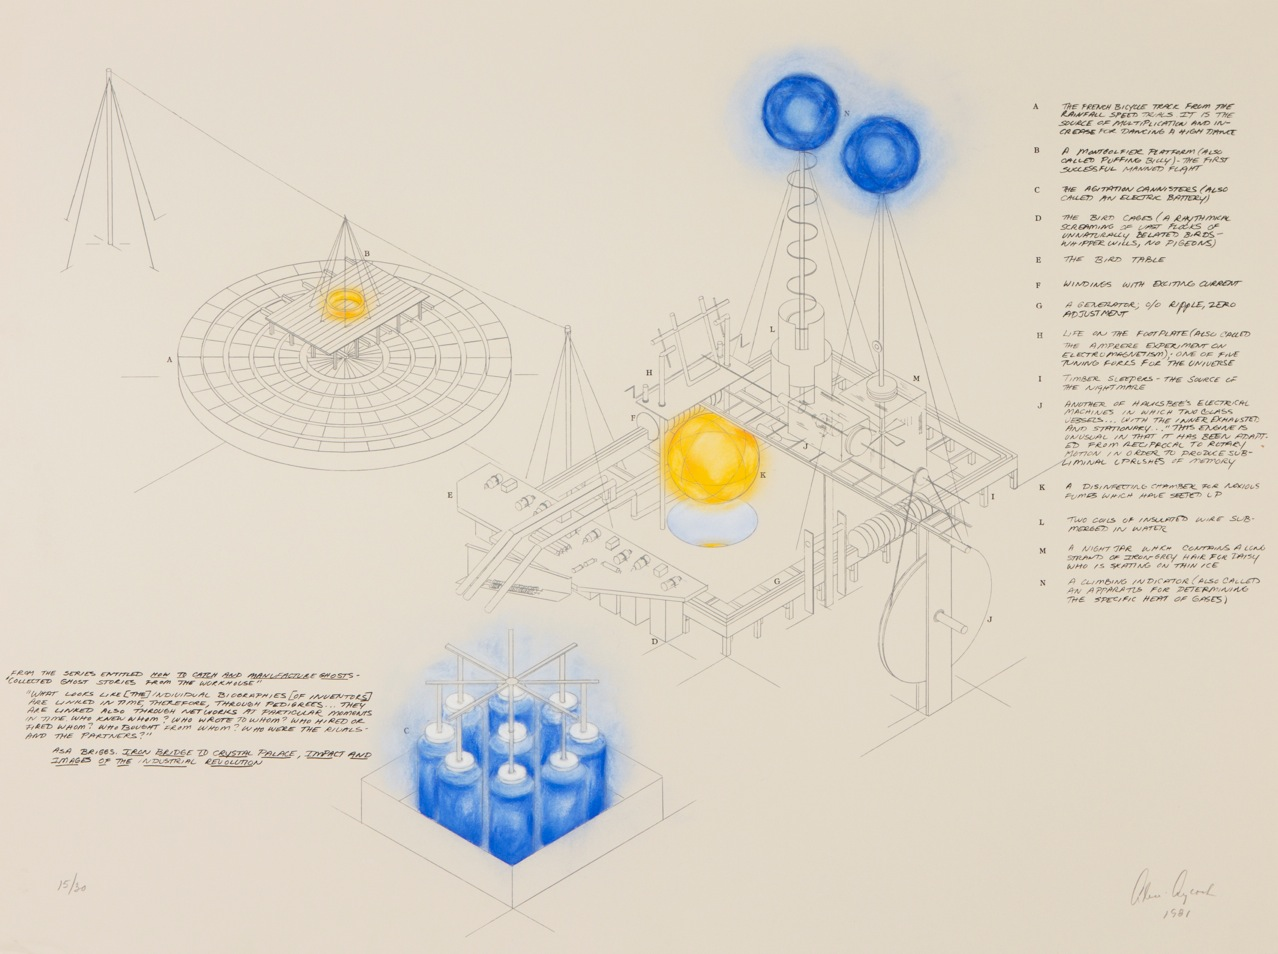 Alice Aycock,  How to Catch and Manufacture Ghosts , 1981, Photo-etching and watercolor (XVII/XXX), Polk Museum of Art Permanent Collection 2002.21.1, Gift of Norma Canelas and William D. Roth.